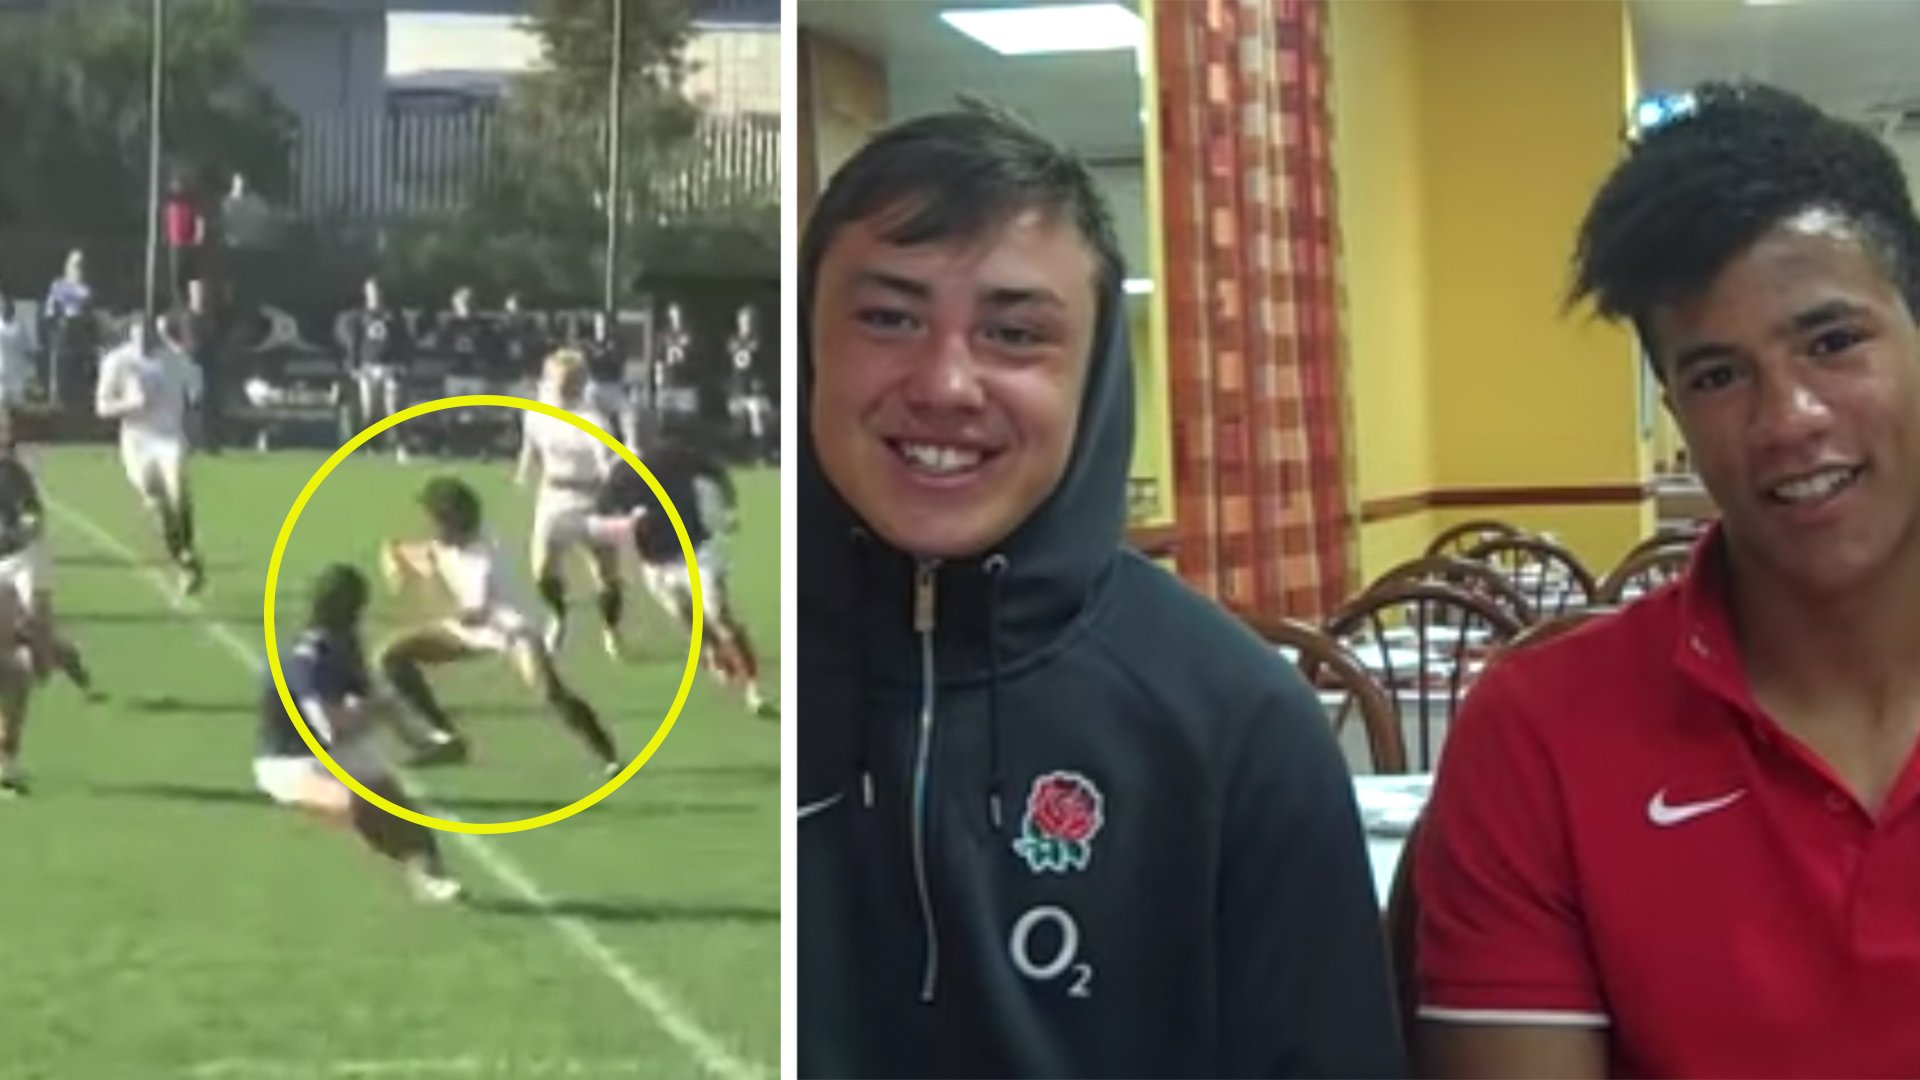 Devastating highlight reels of young England stars that showed they were the real deal